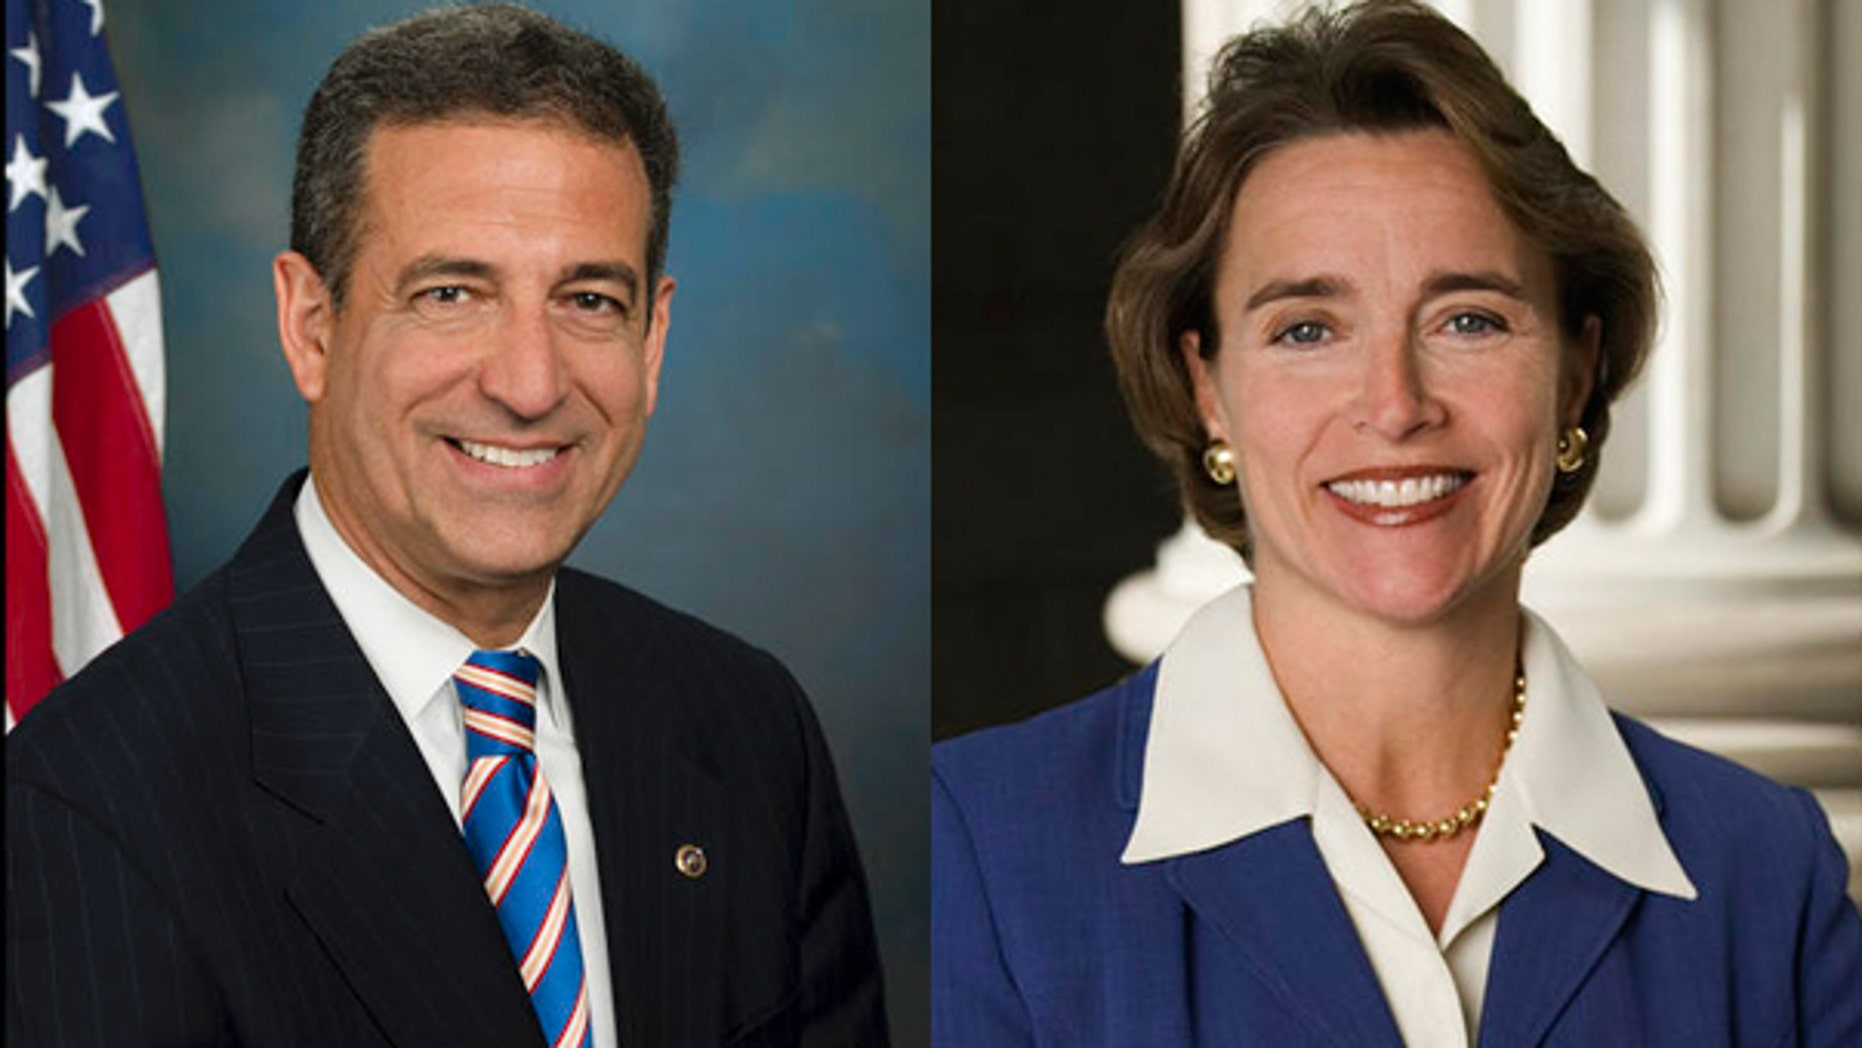 Democratic Sens. Russ Feingold of Wisconsin and Blanche Lincoln of Arkansas are facing the prospect of high-profile challengers (AP)